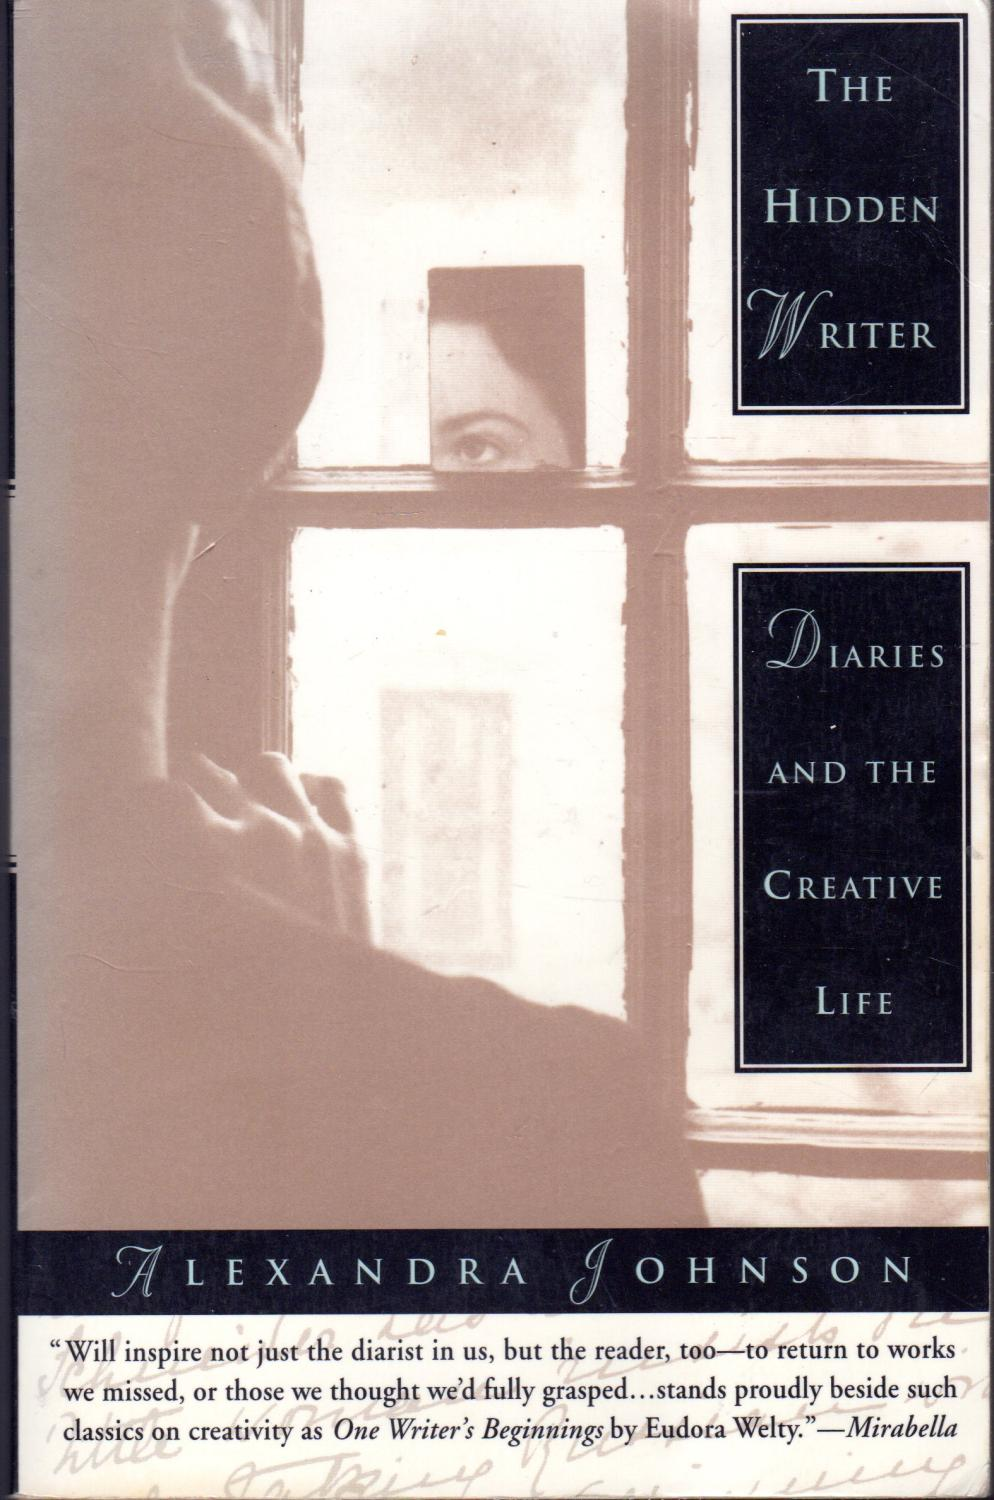 The Hidden Writer: Diaries and the Creative Life - Johnson, Alexandra